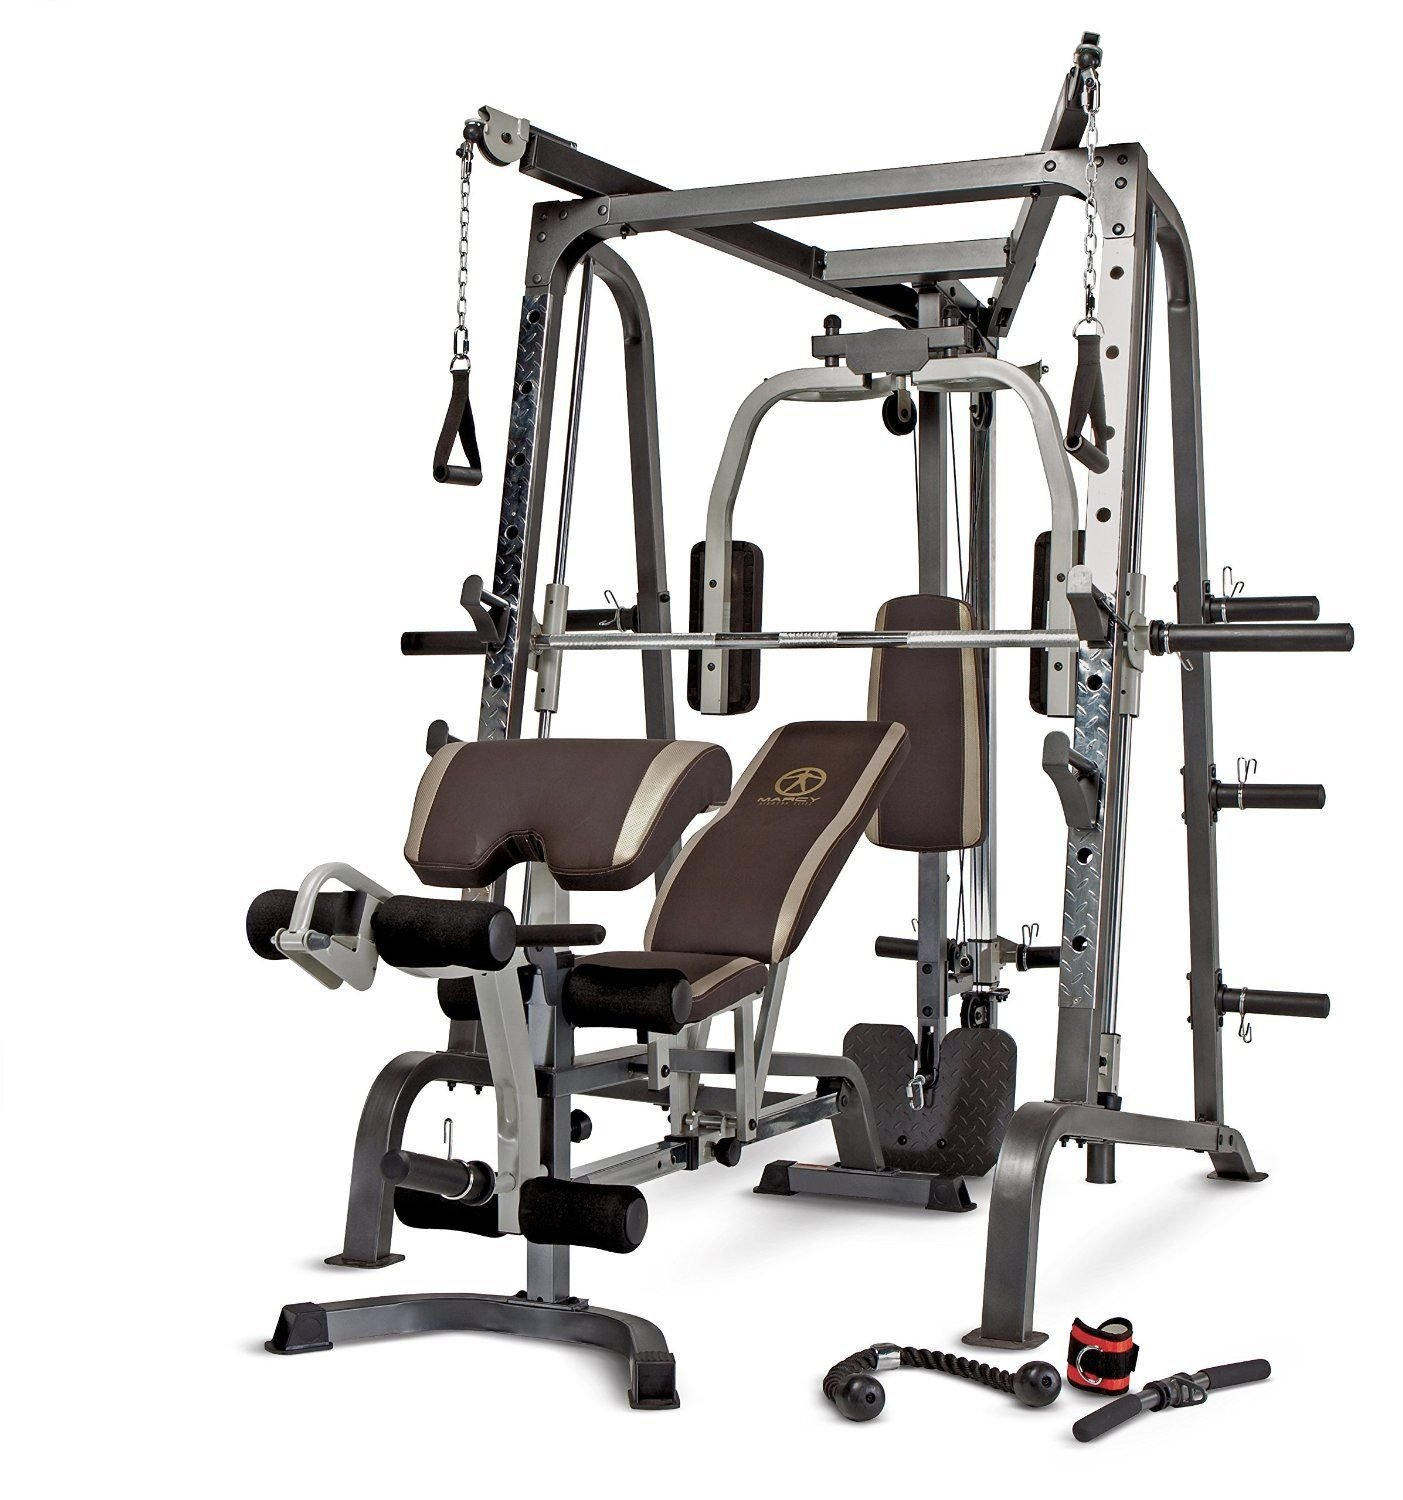 Fitness Equipment Home Gym Workout Smith Cage Machine Total Body Gym - House Deals